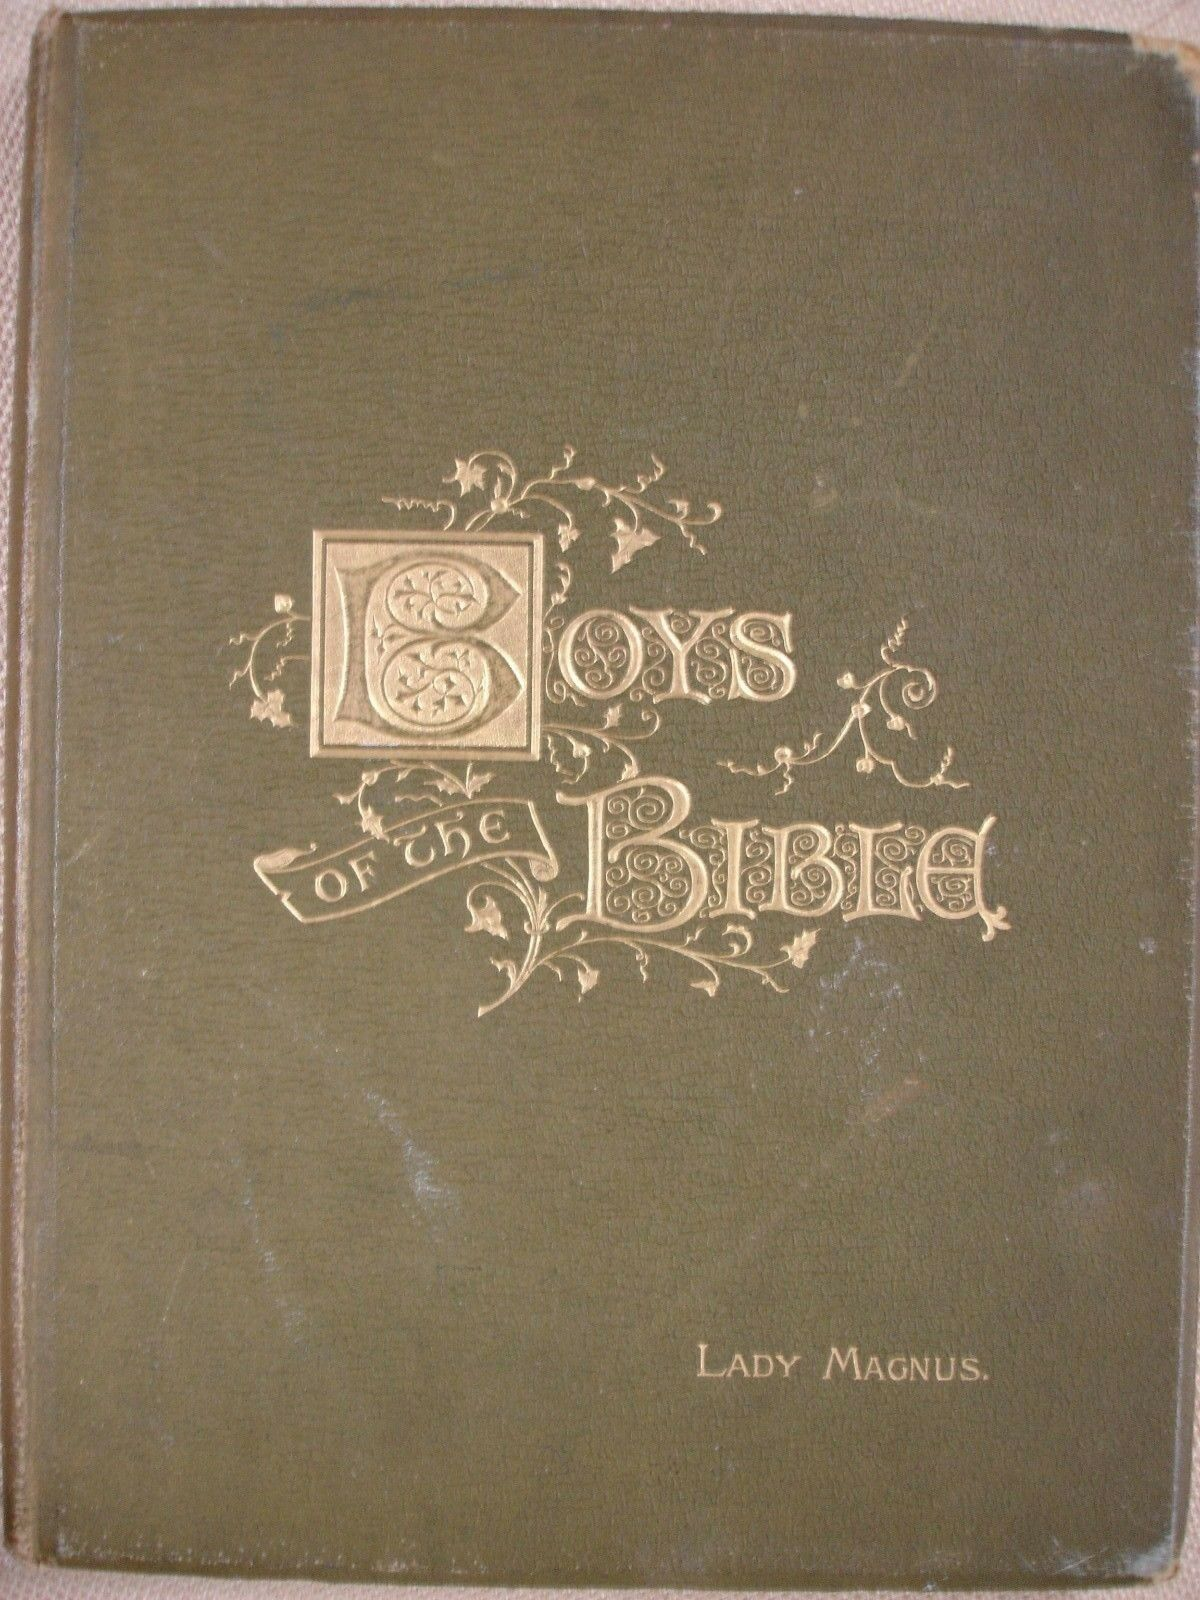 Boys of the Bible by Lady Magnus - FBHP-9